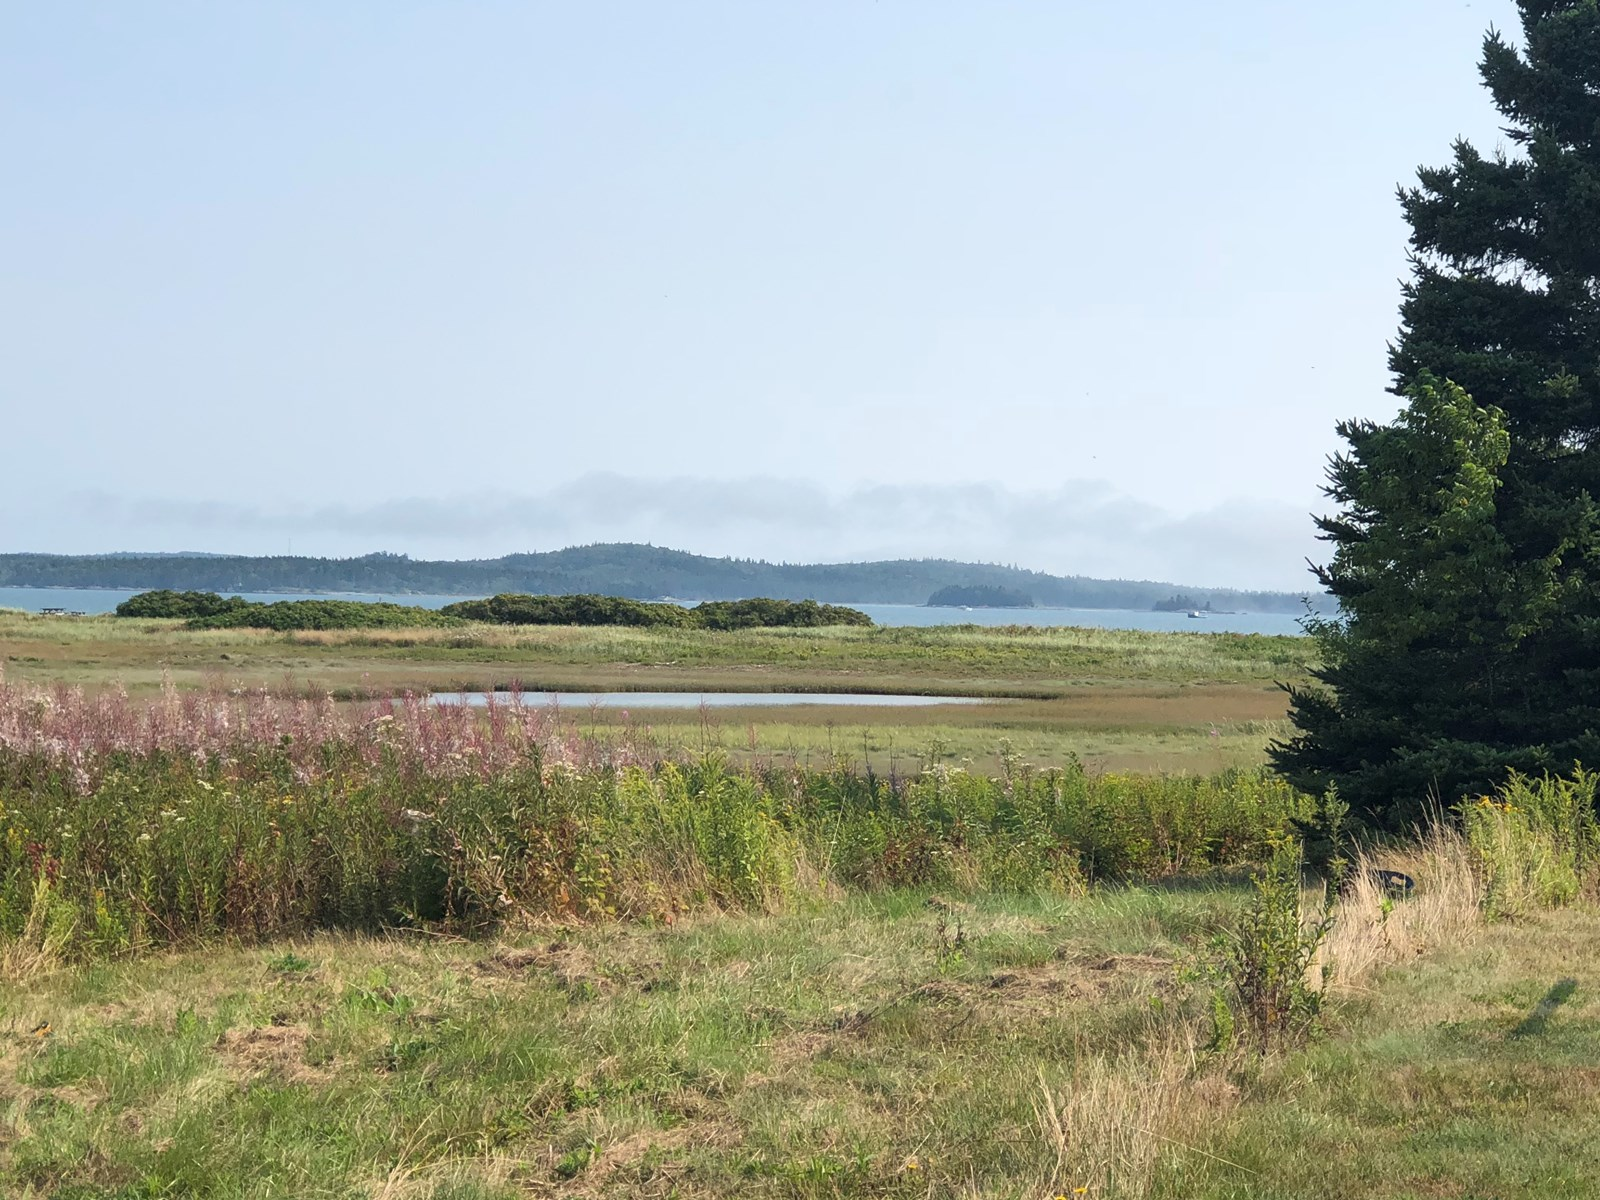 Home lot for sale in coastal Lubec Maine